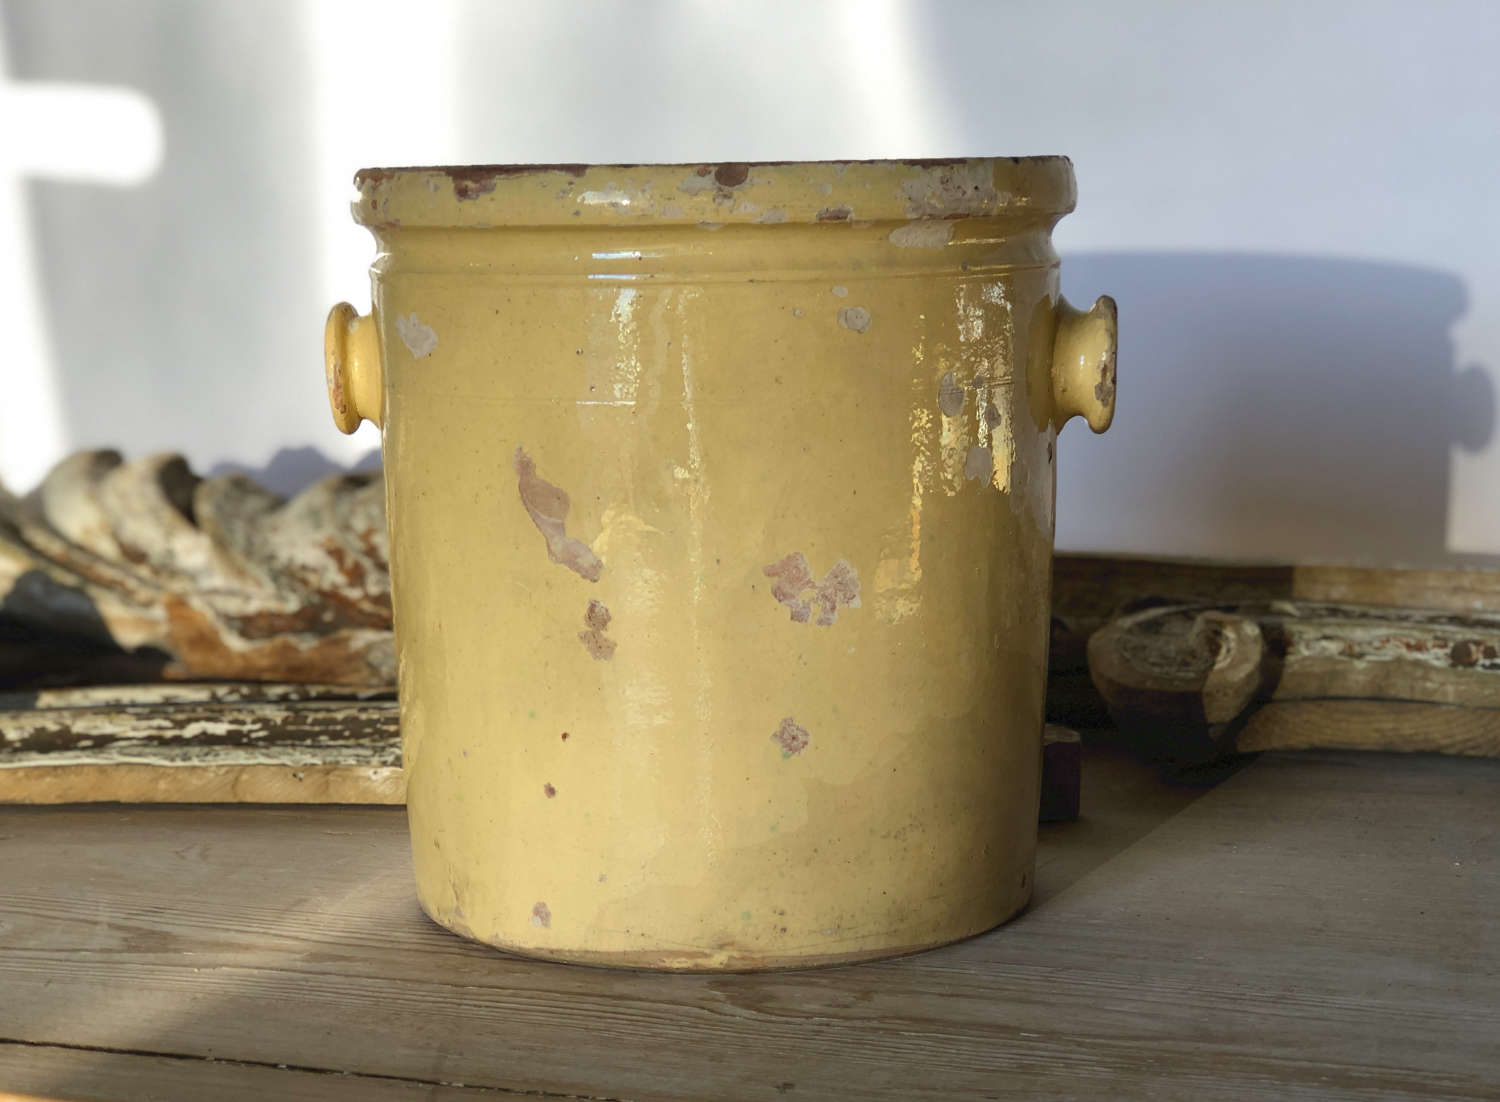 19th century Tall Yellow Glazed terracotta jar - circa 1800